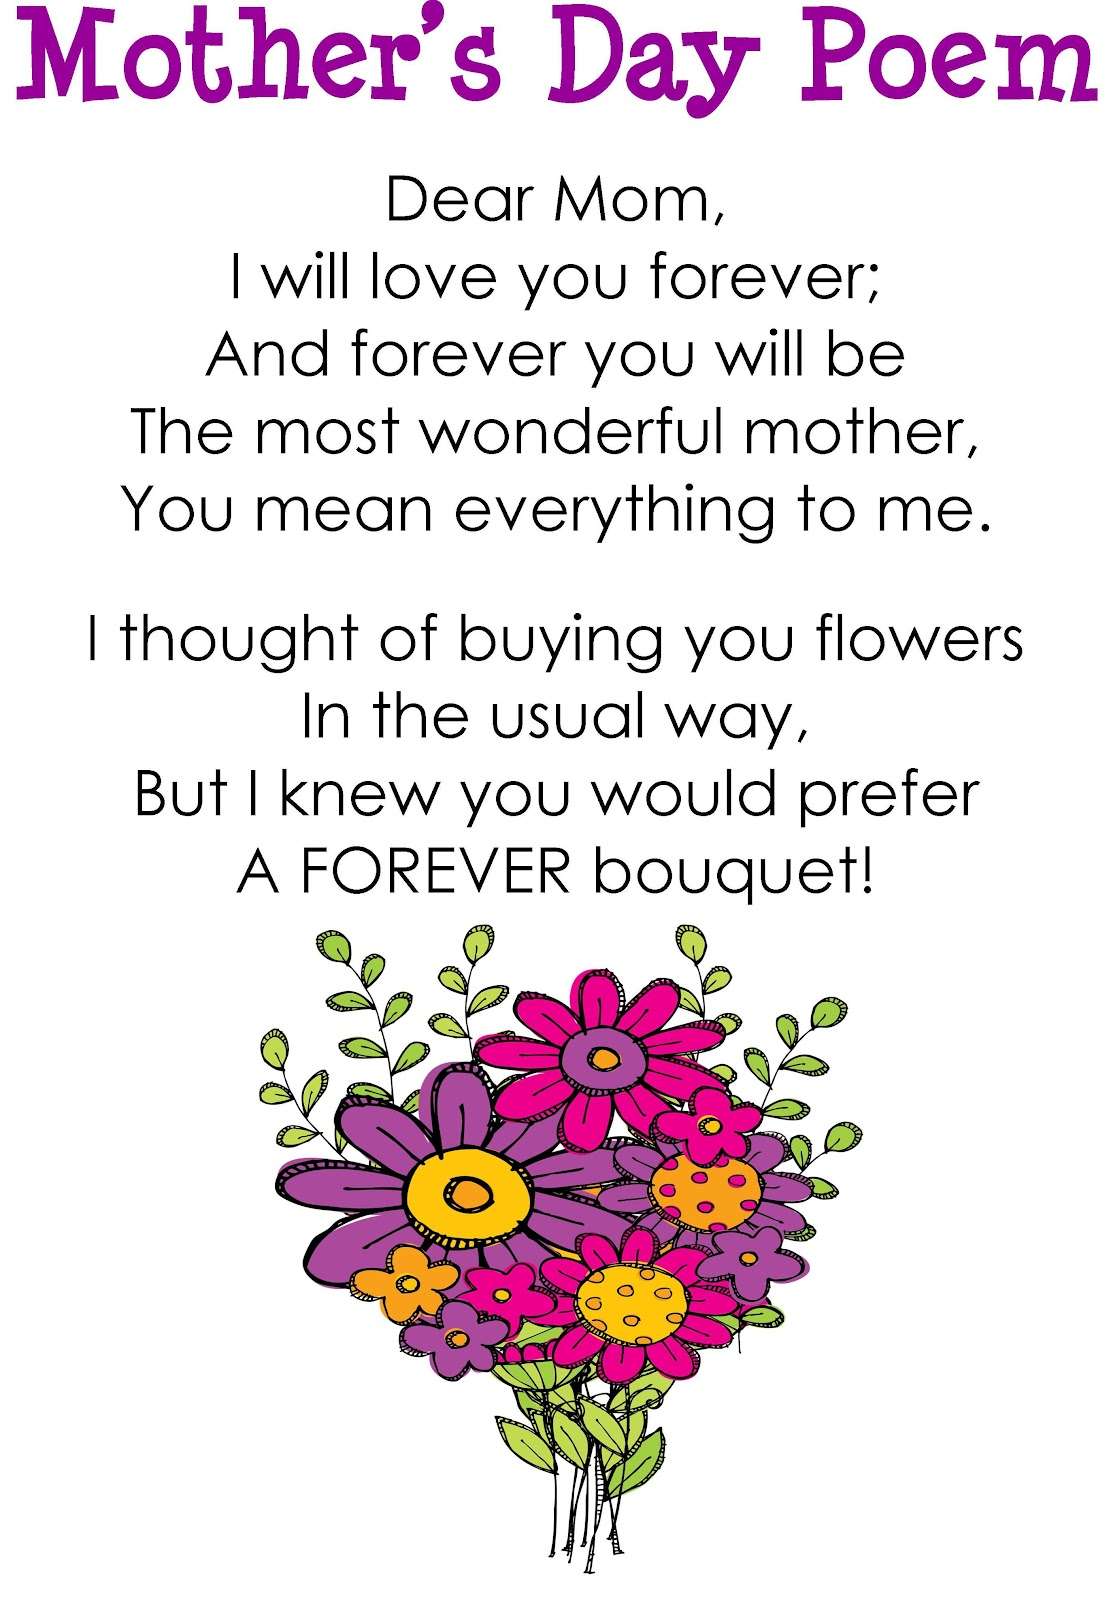 Mothers day quotes wallpapers hd 2015 happy Mothers day pictures 1109x1600